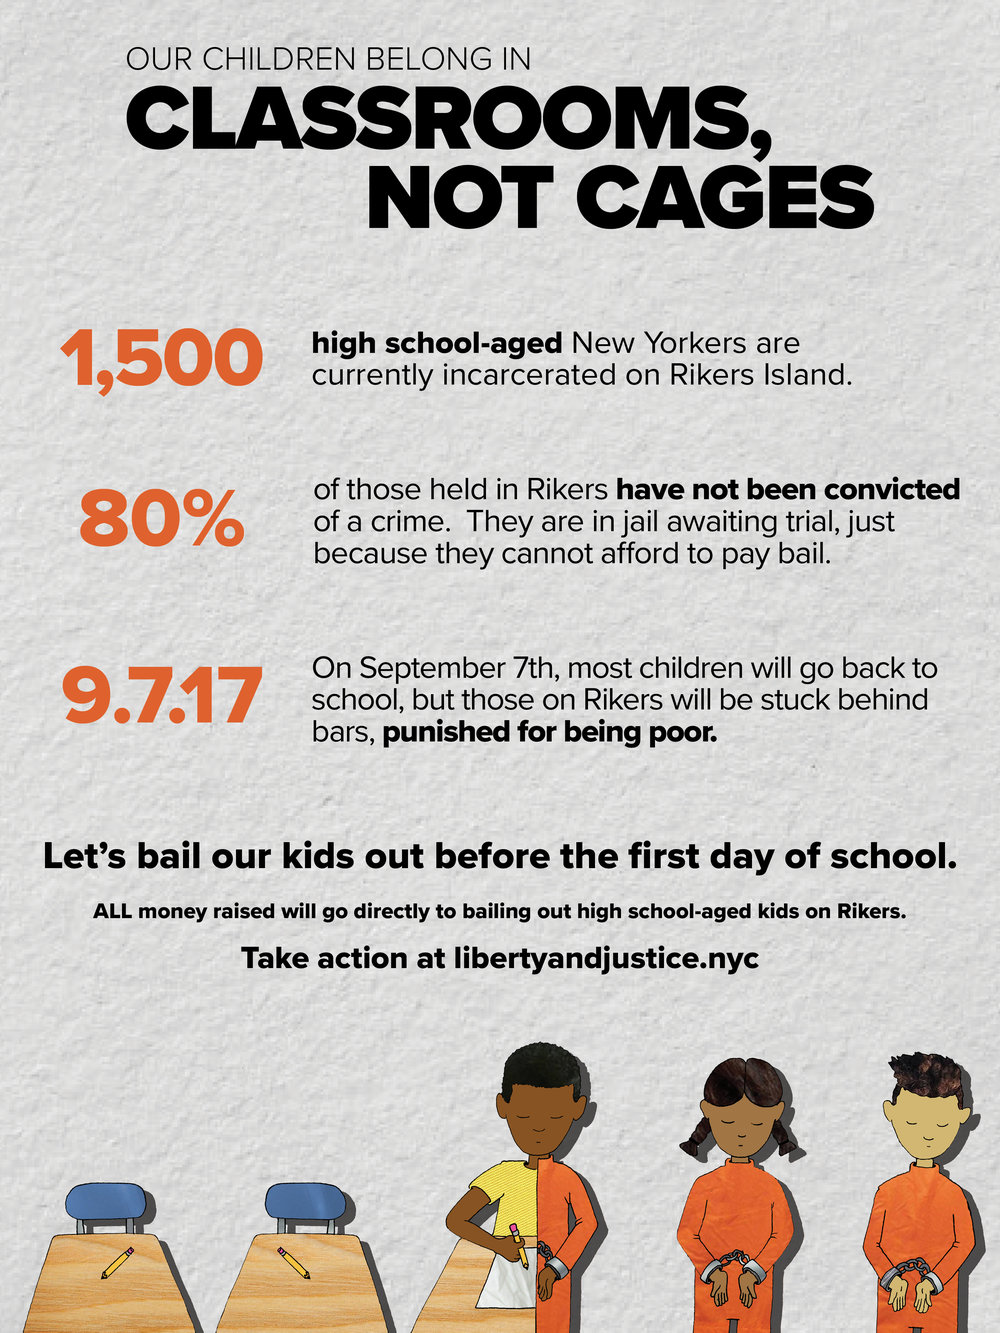 Classrooms Not Cages Infographic 10 (no logo).jpg